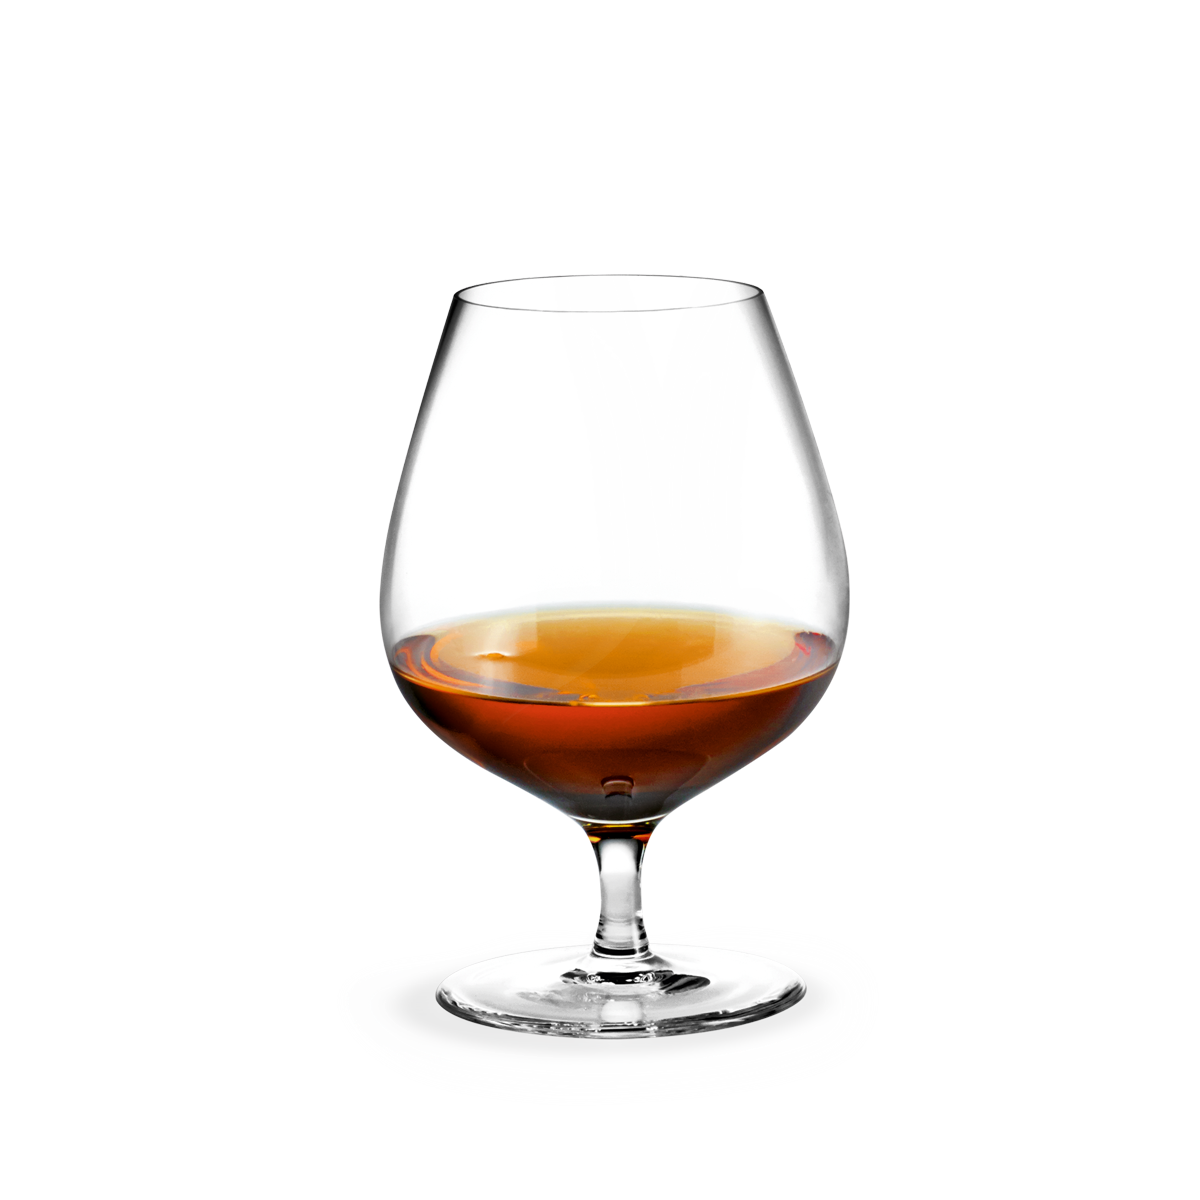 Brandy glass png. From peter svarrer s